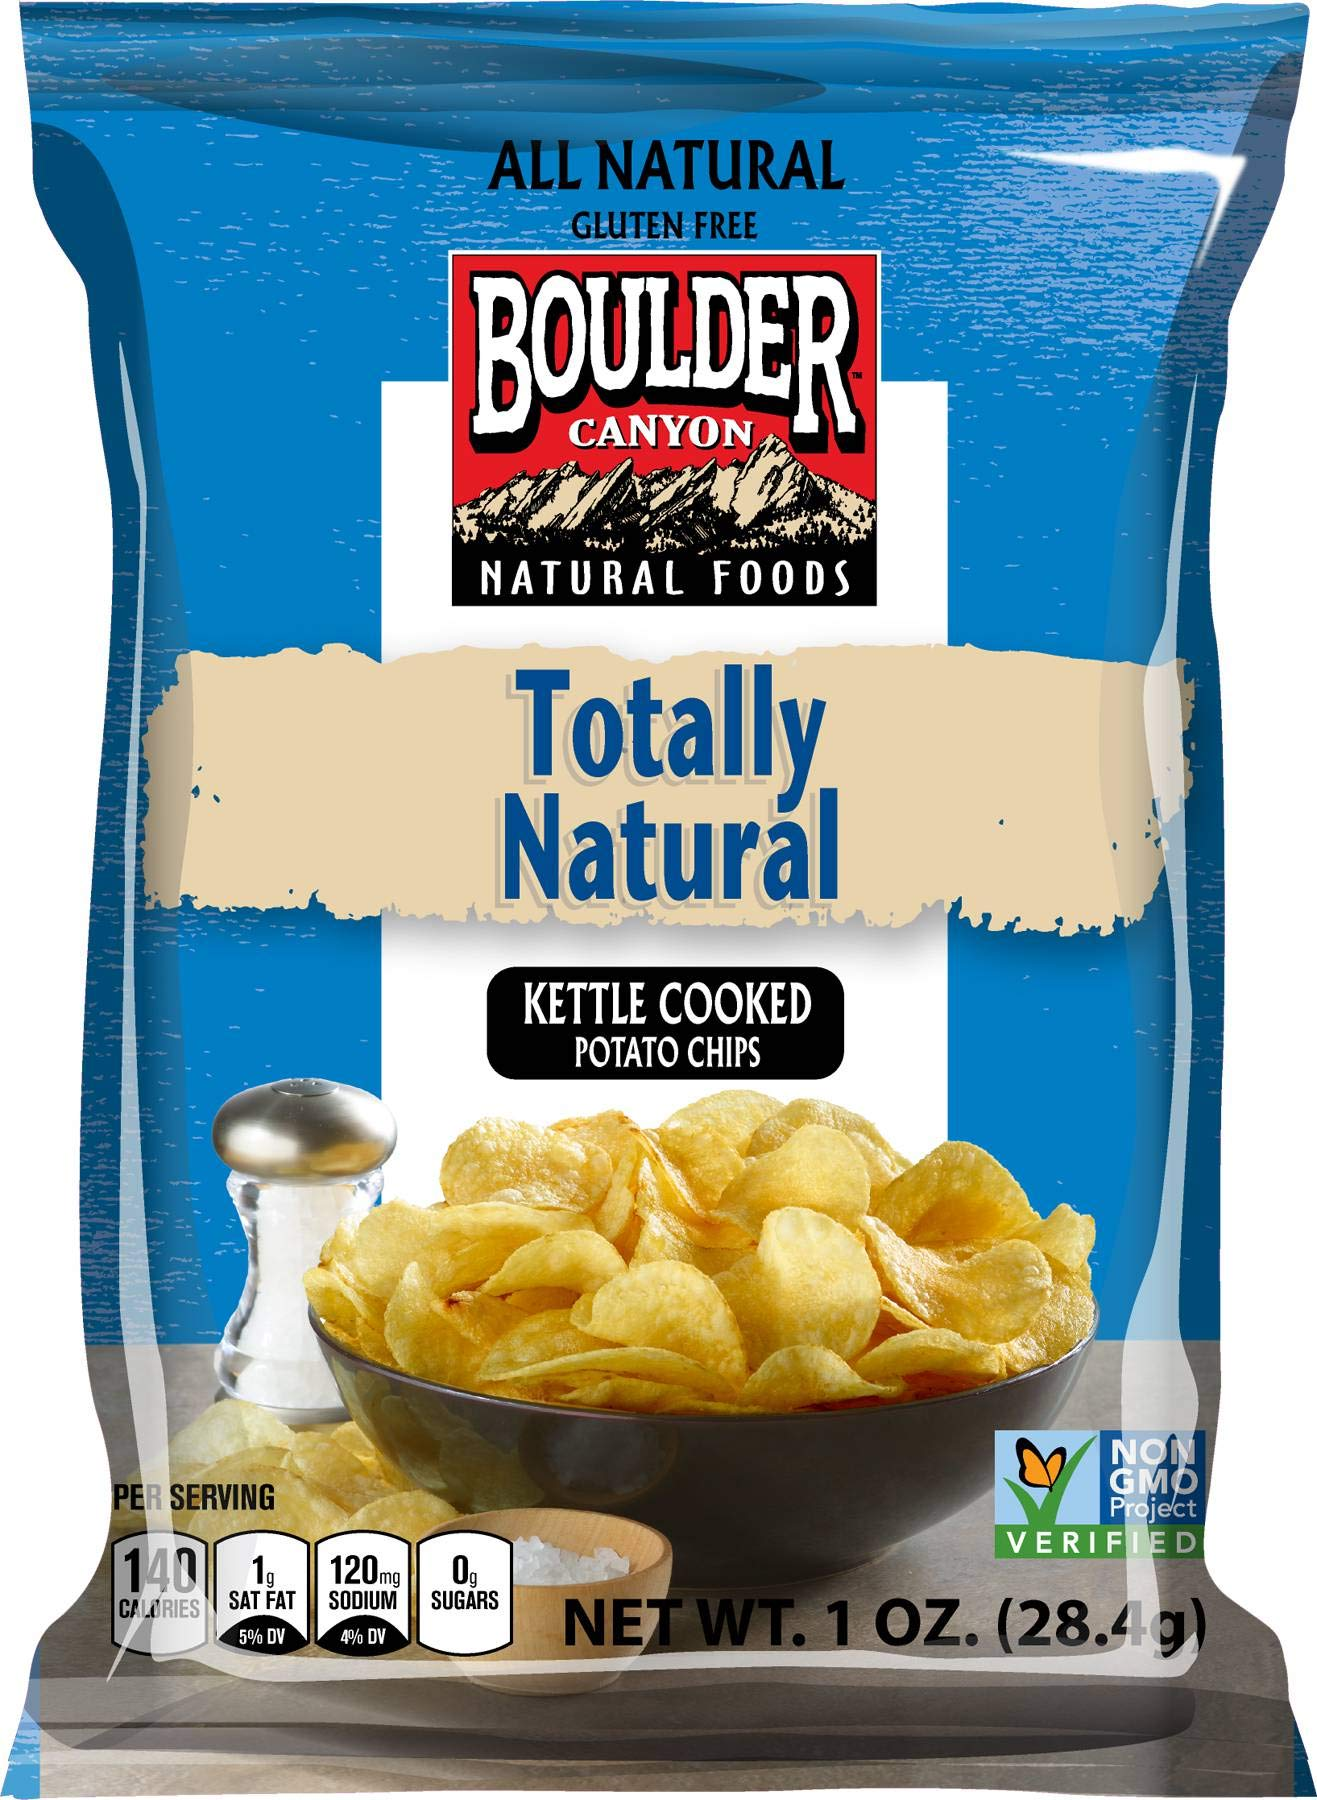 Boulder Canyon Sea Salt Kettle Cooked Potato Chips - 1 oz. bag, 72 per case